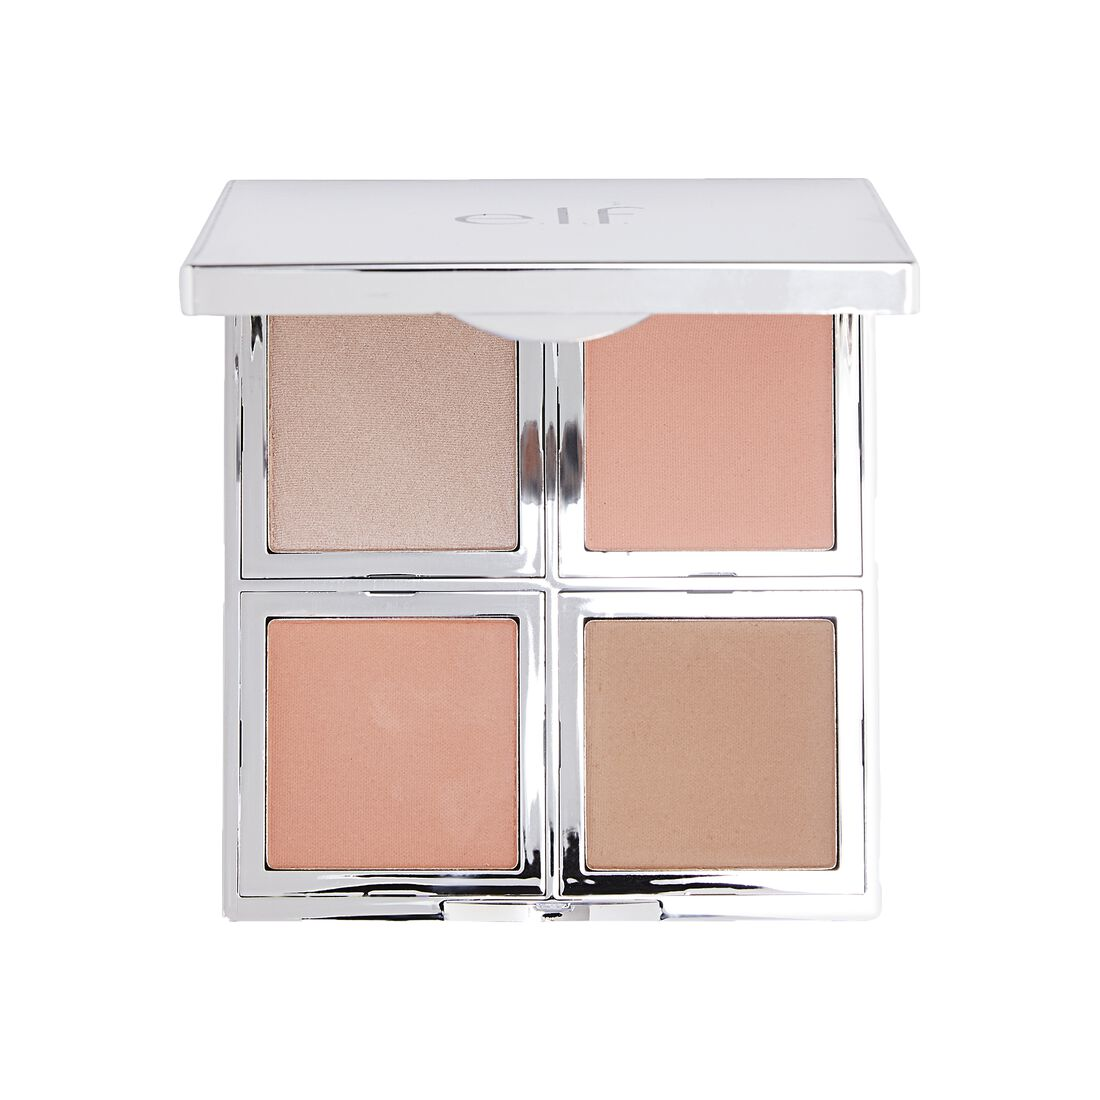 E.l.f Cosmetics - Beautifully Bare Natural Glow Face Palette